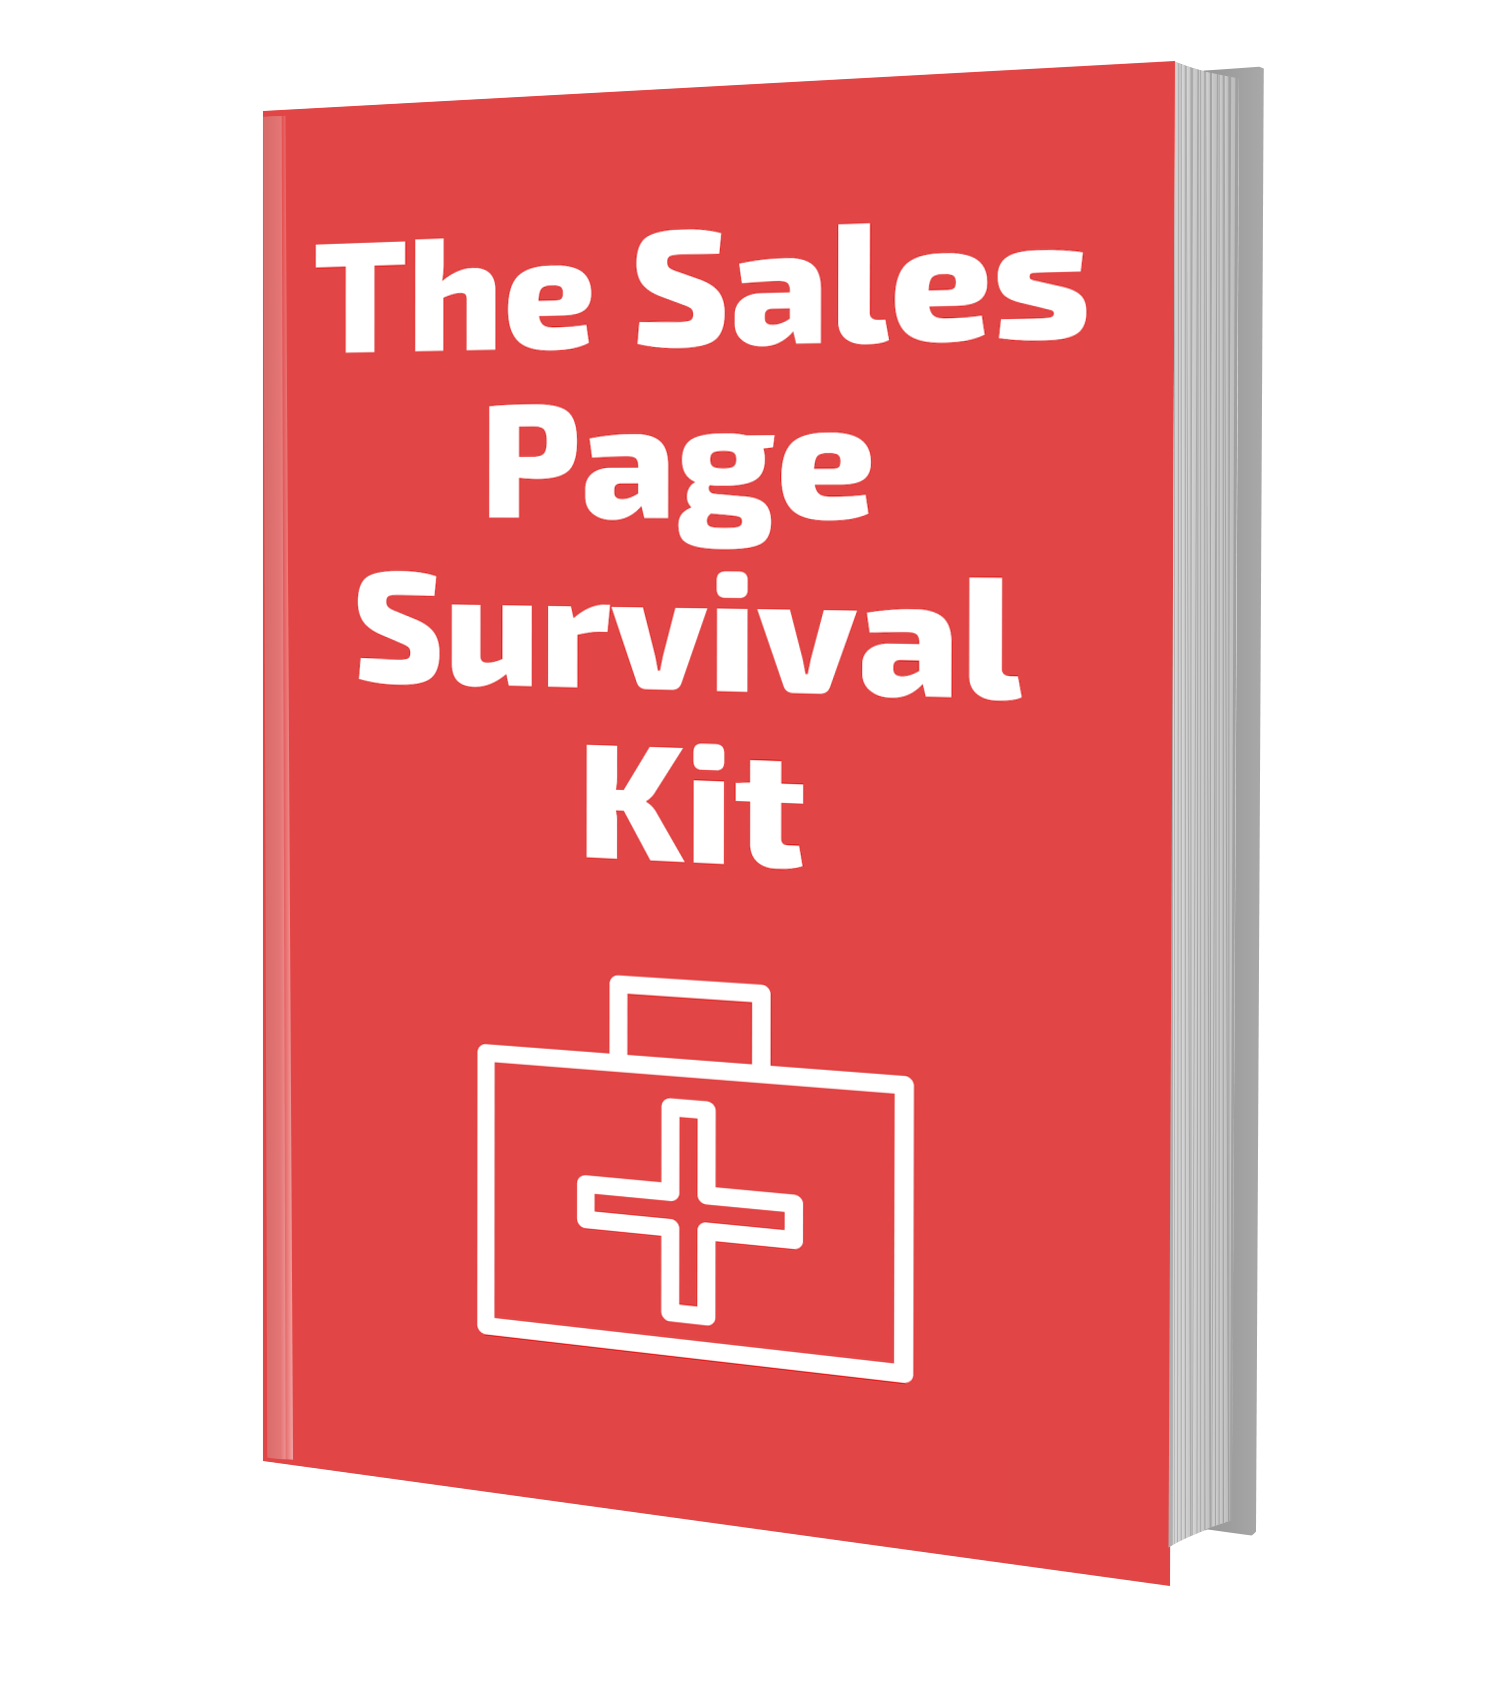 The Sales Page Survival Kit